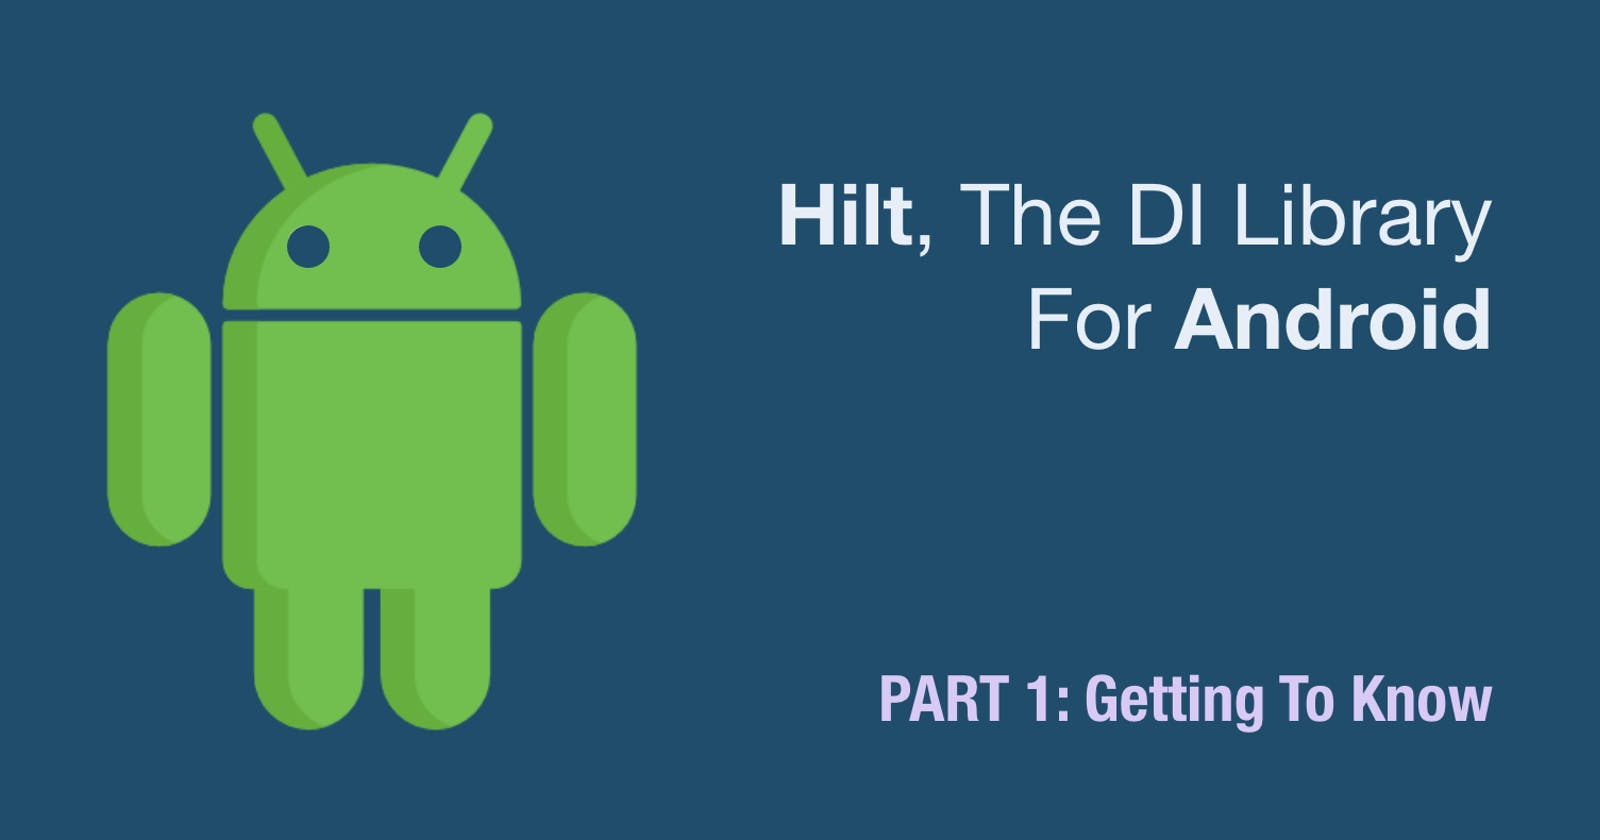 Hilt, The DI Library For Android – PART 1: Getting To Know